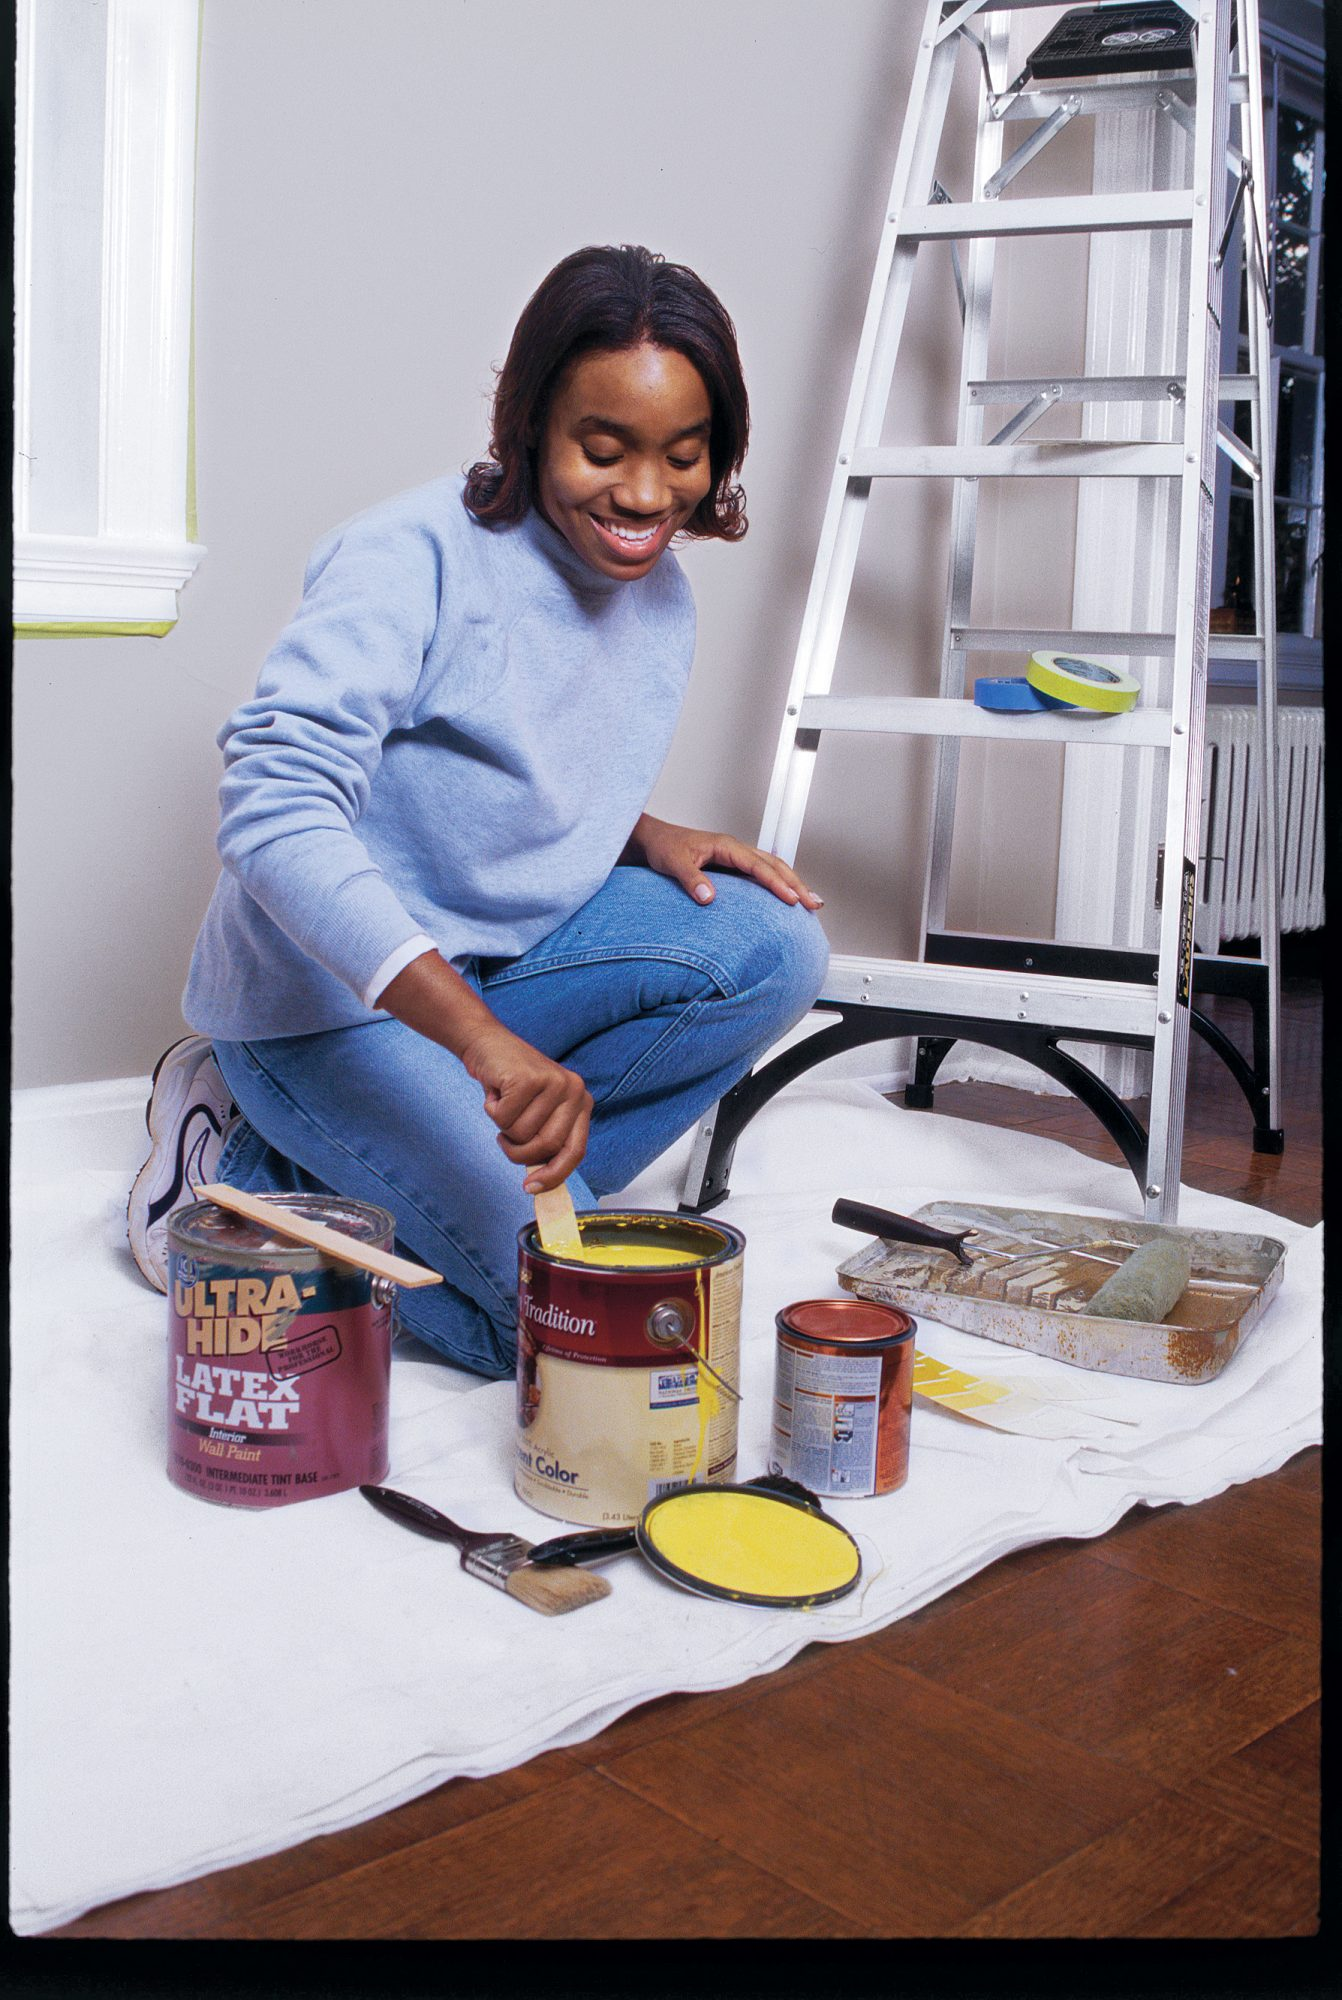 Paint Products That Make the Job Easier